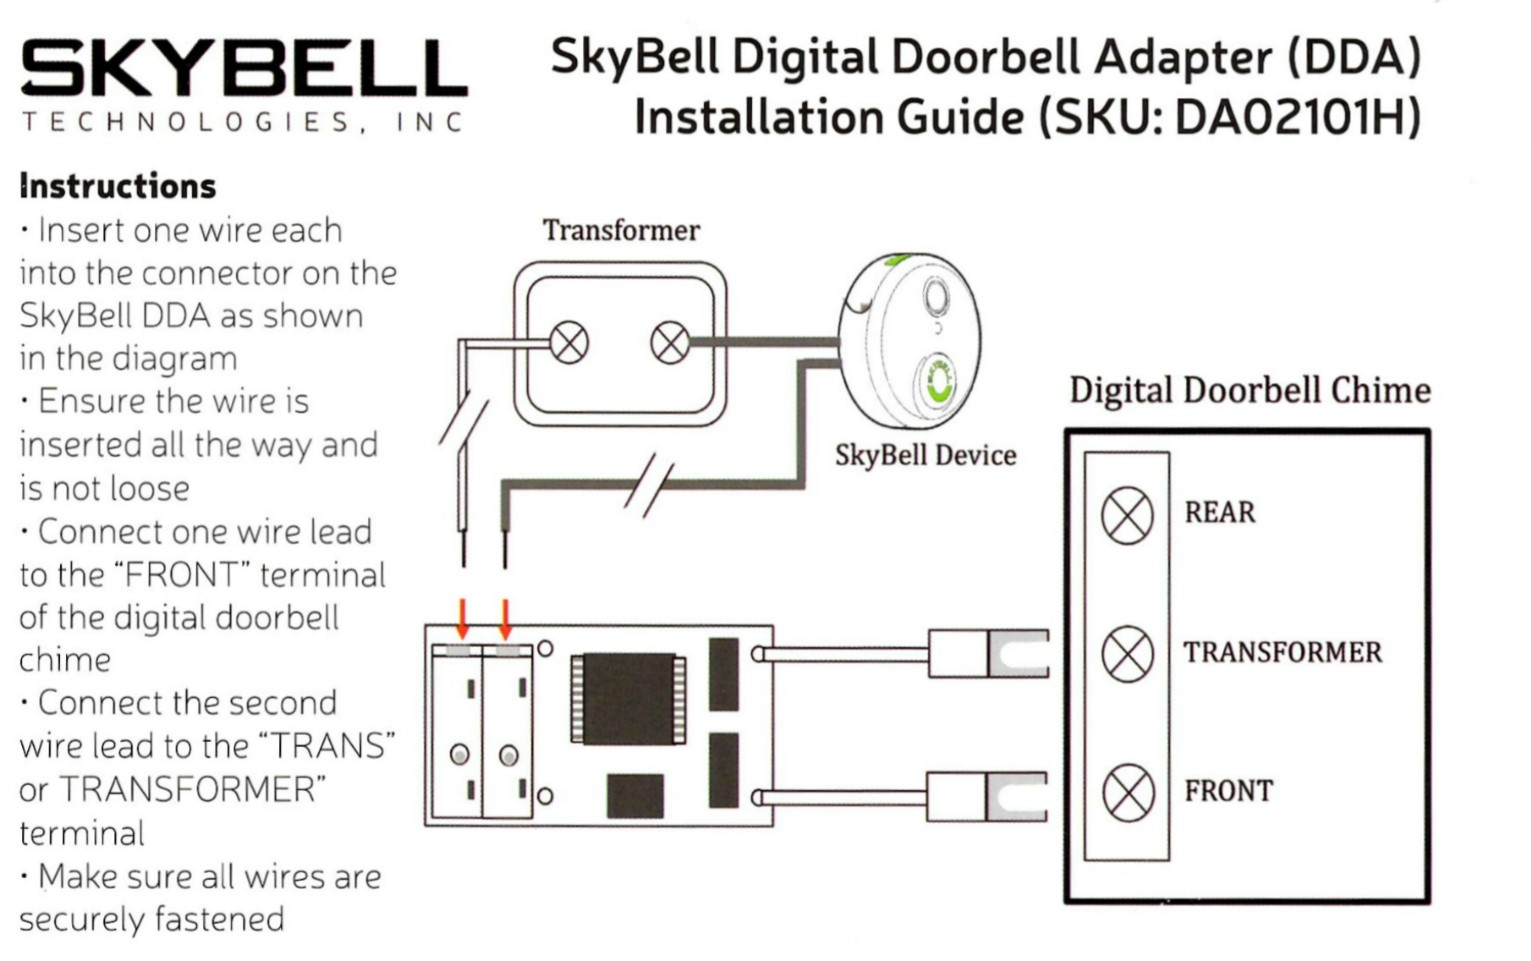 Do I Need A Digital Doorbell Adapter How Install It Skybell Home Intercom Systems Wiring Drawings Dda Instructions Installation Video